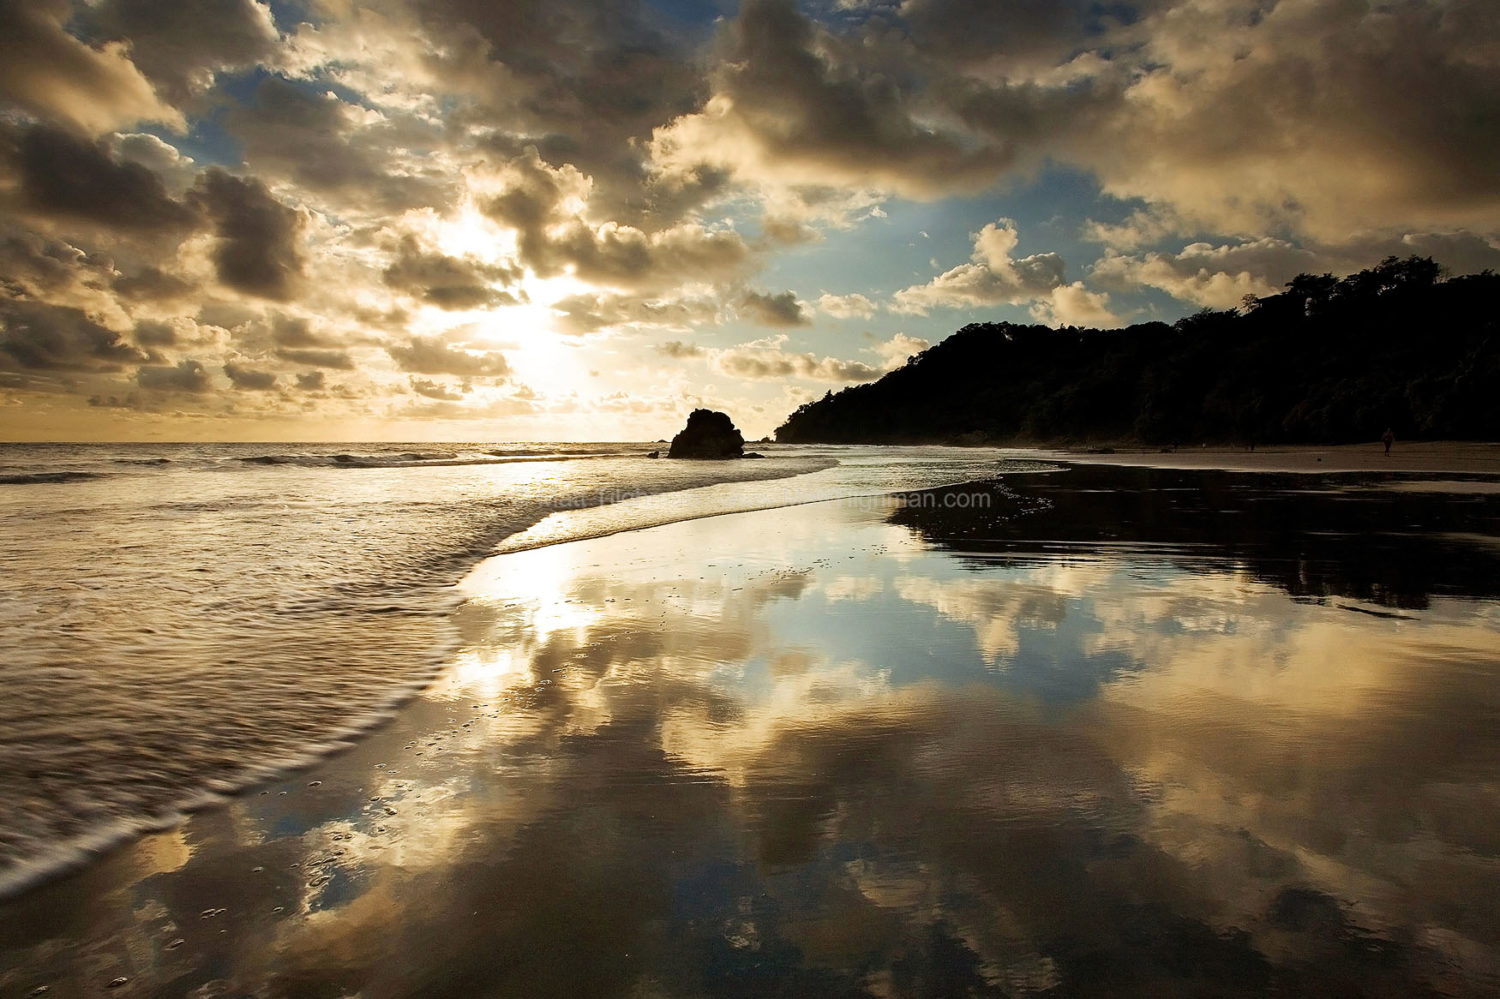 Fine art stock photograph from Manuel Antonio Park, Costa Rica. The sunset becomes reflected perfectly by the thin film of water left on the sand as the waves retreat.